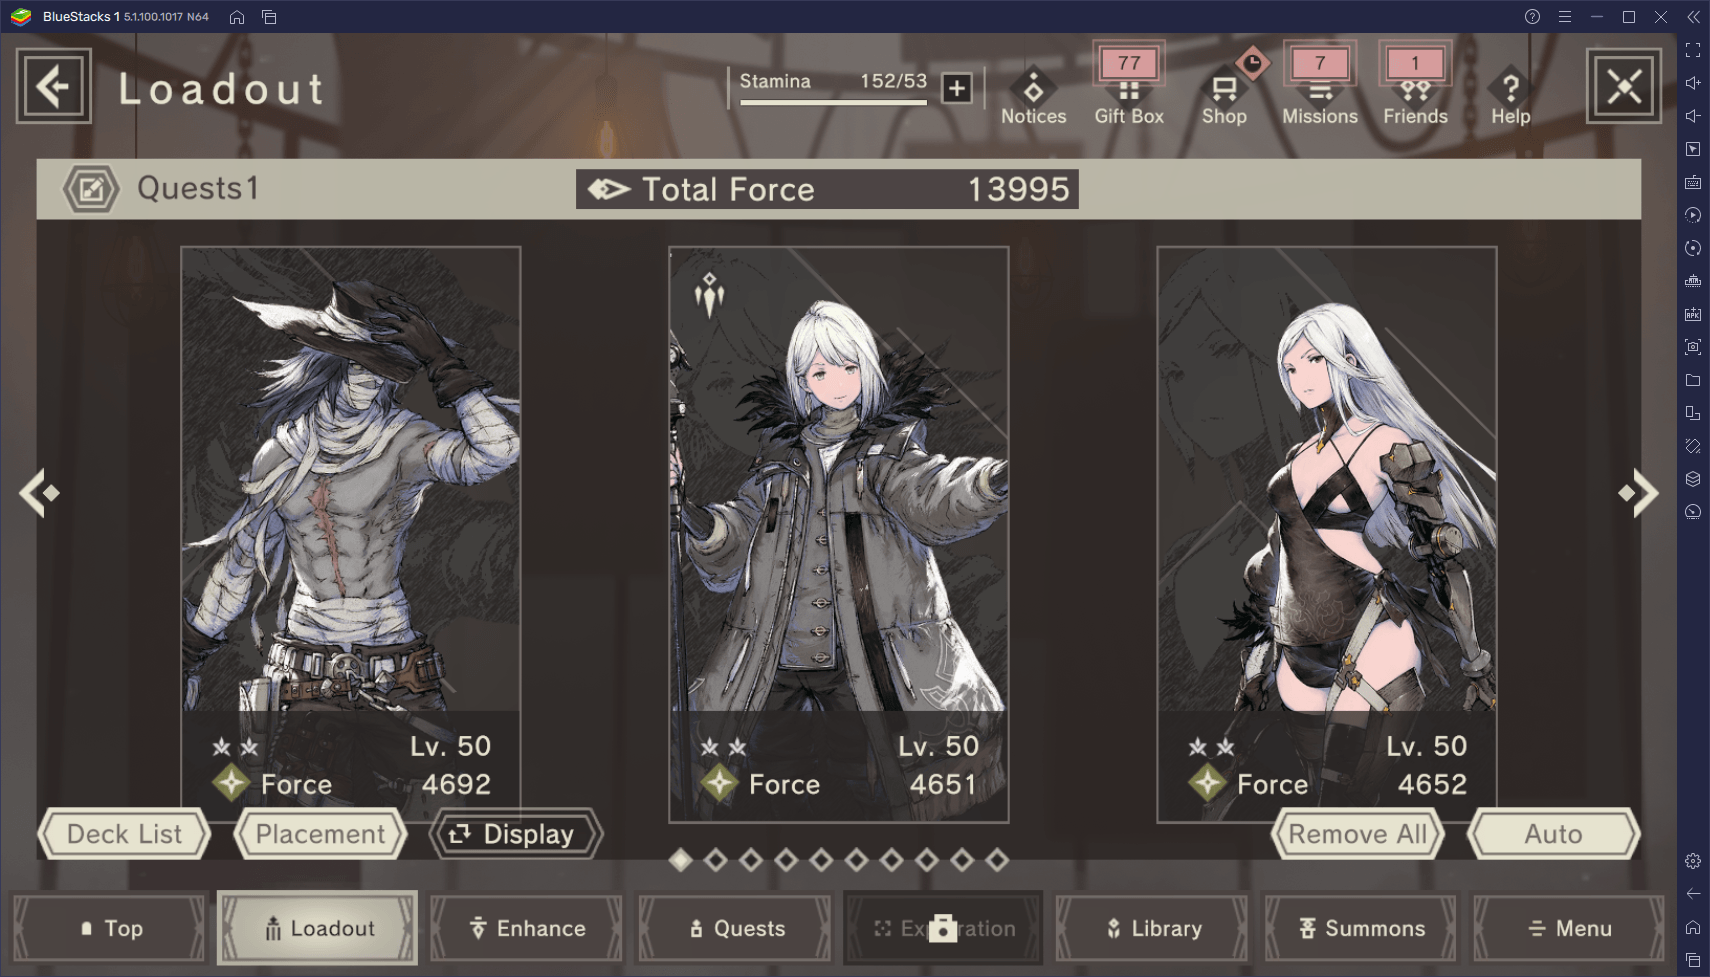 Reroll Guide for NieR Reincarnation – How to Obtain the Best Characters From the Beginning